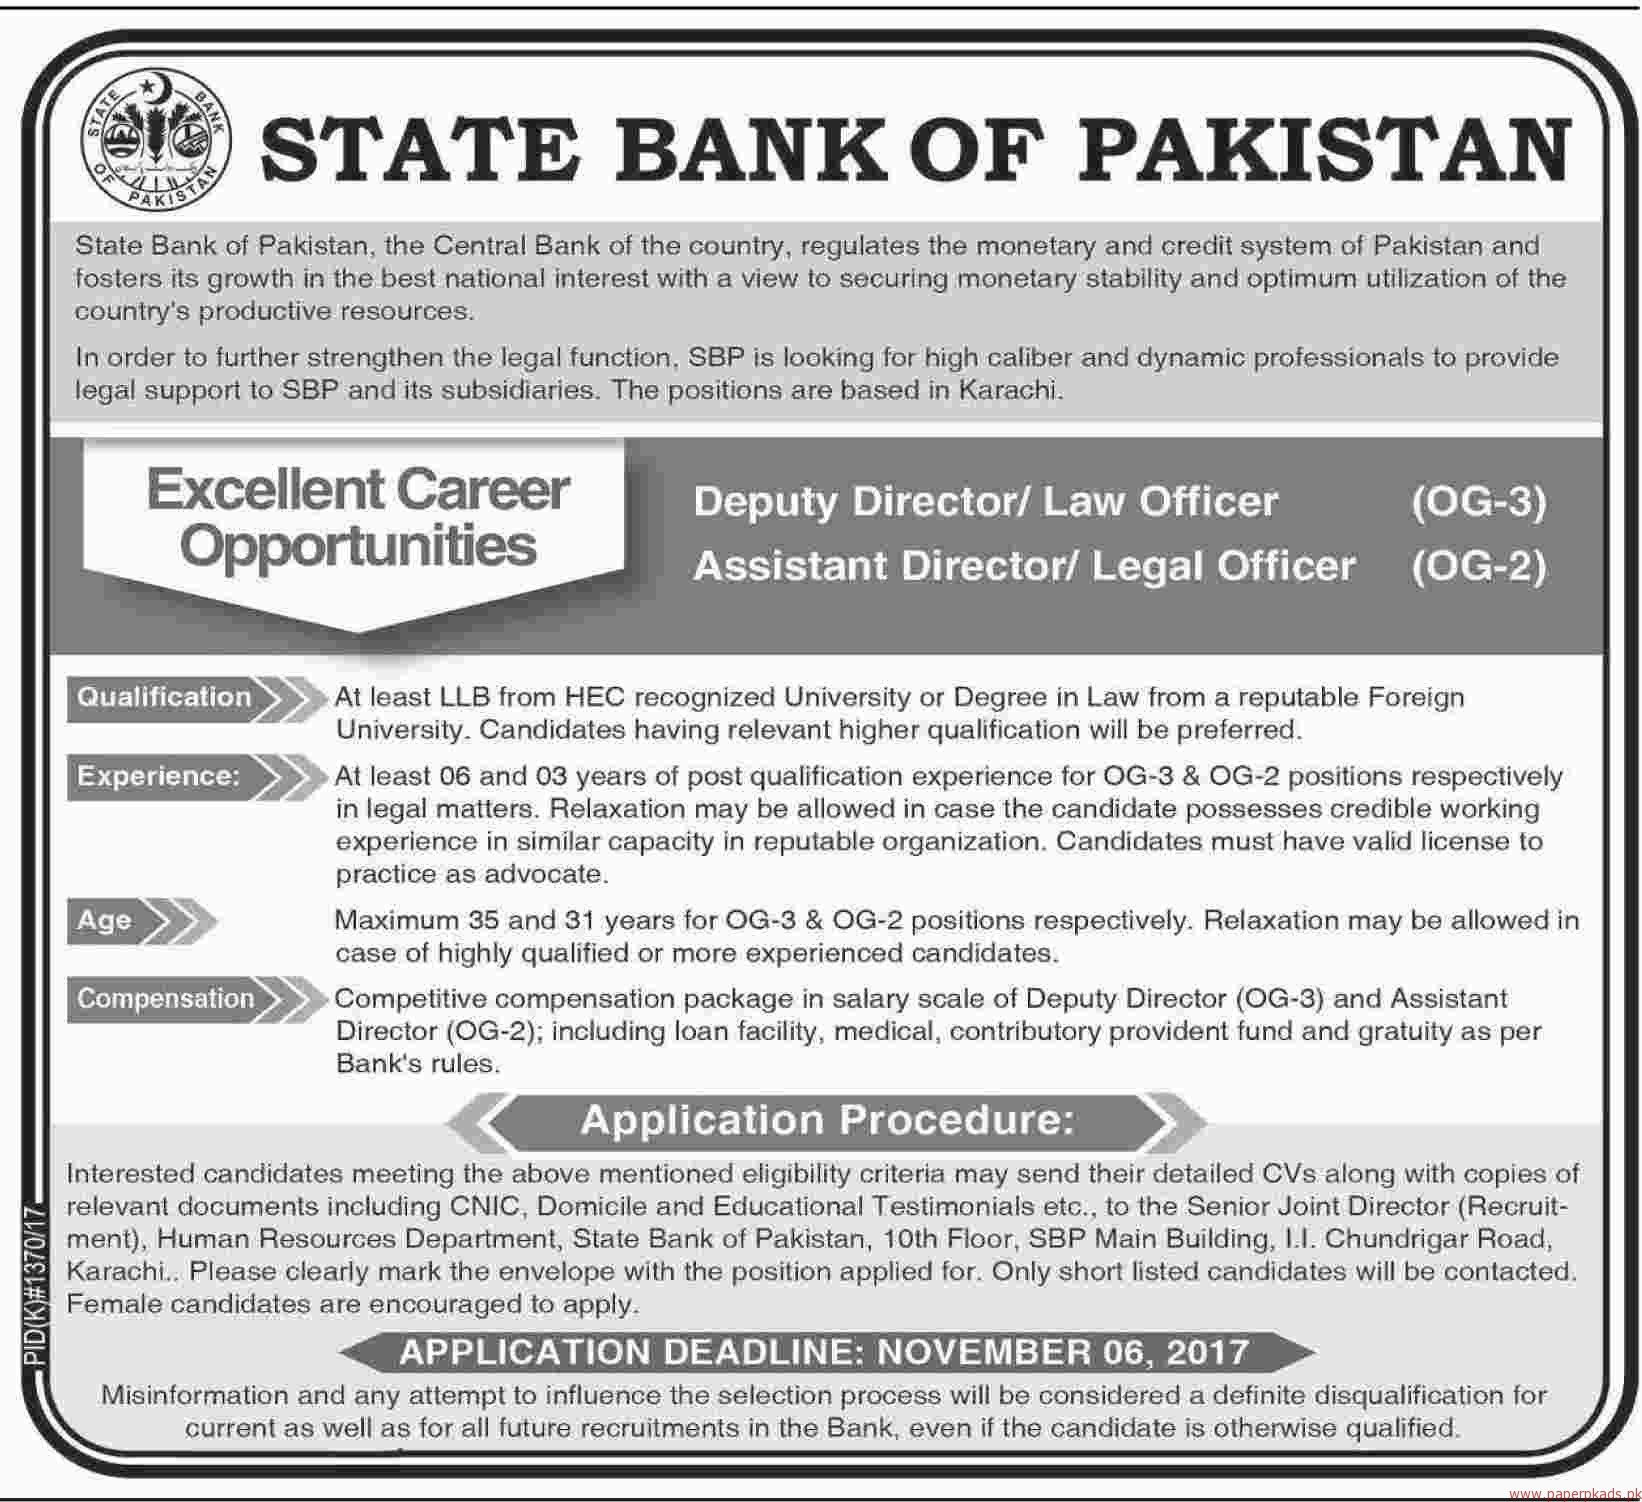 State Bank of Pakistan Jobs 2017